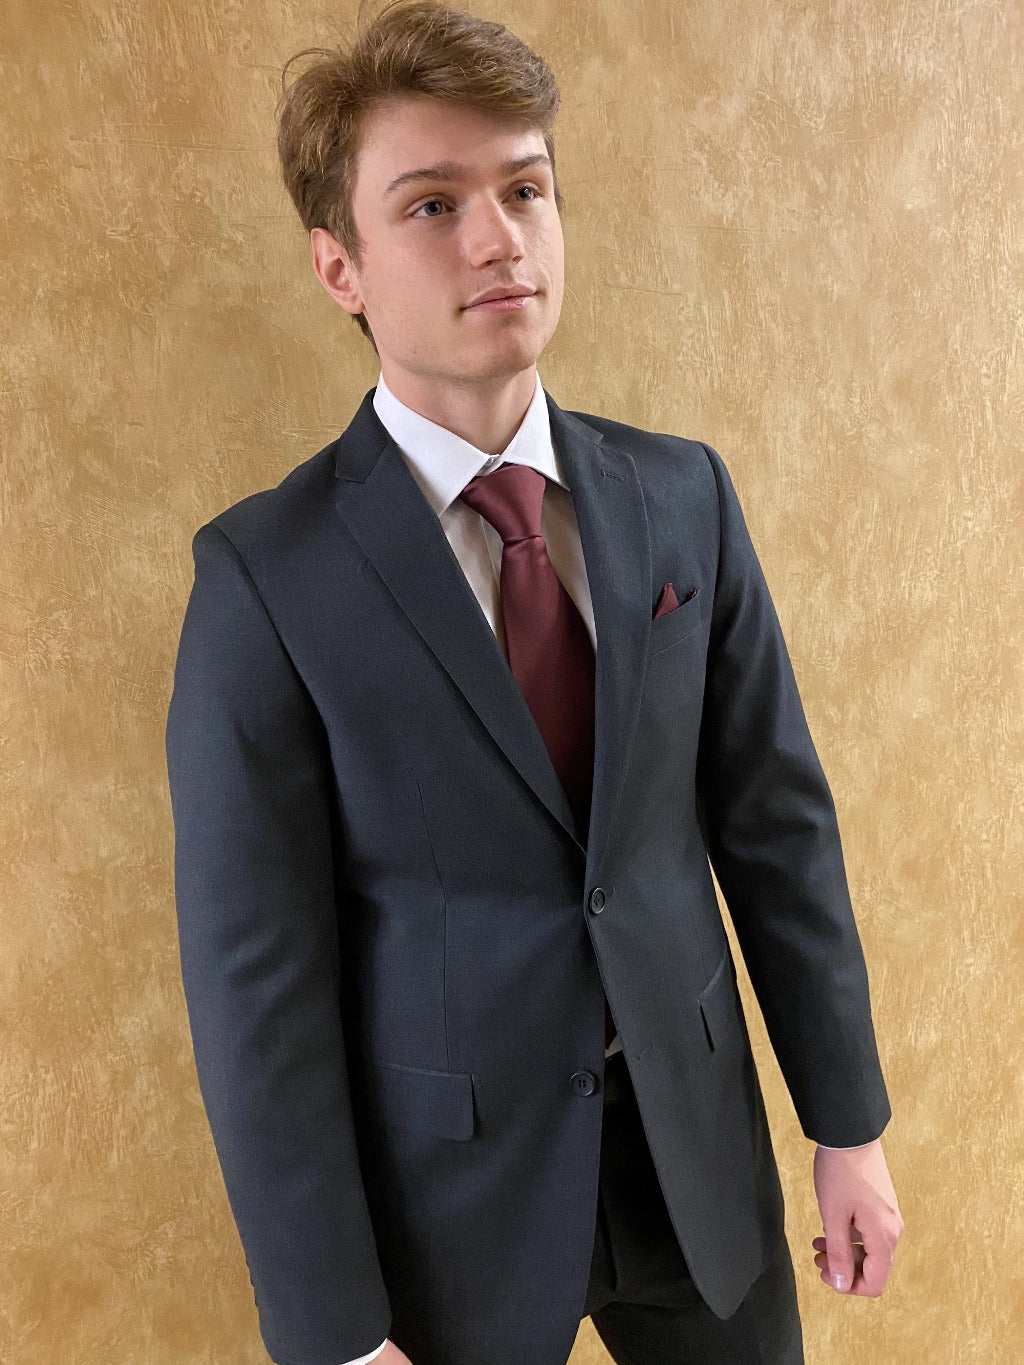 Men's 2 or 3 piece suits by Giorgio Fiorelli